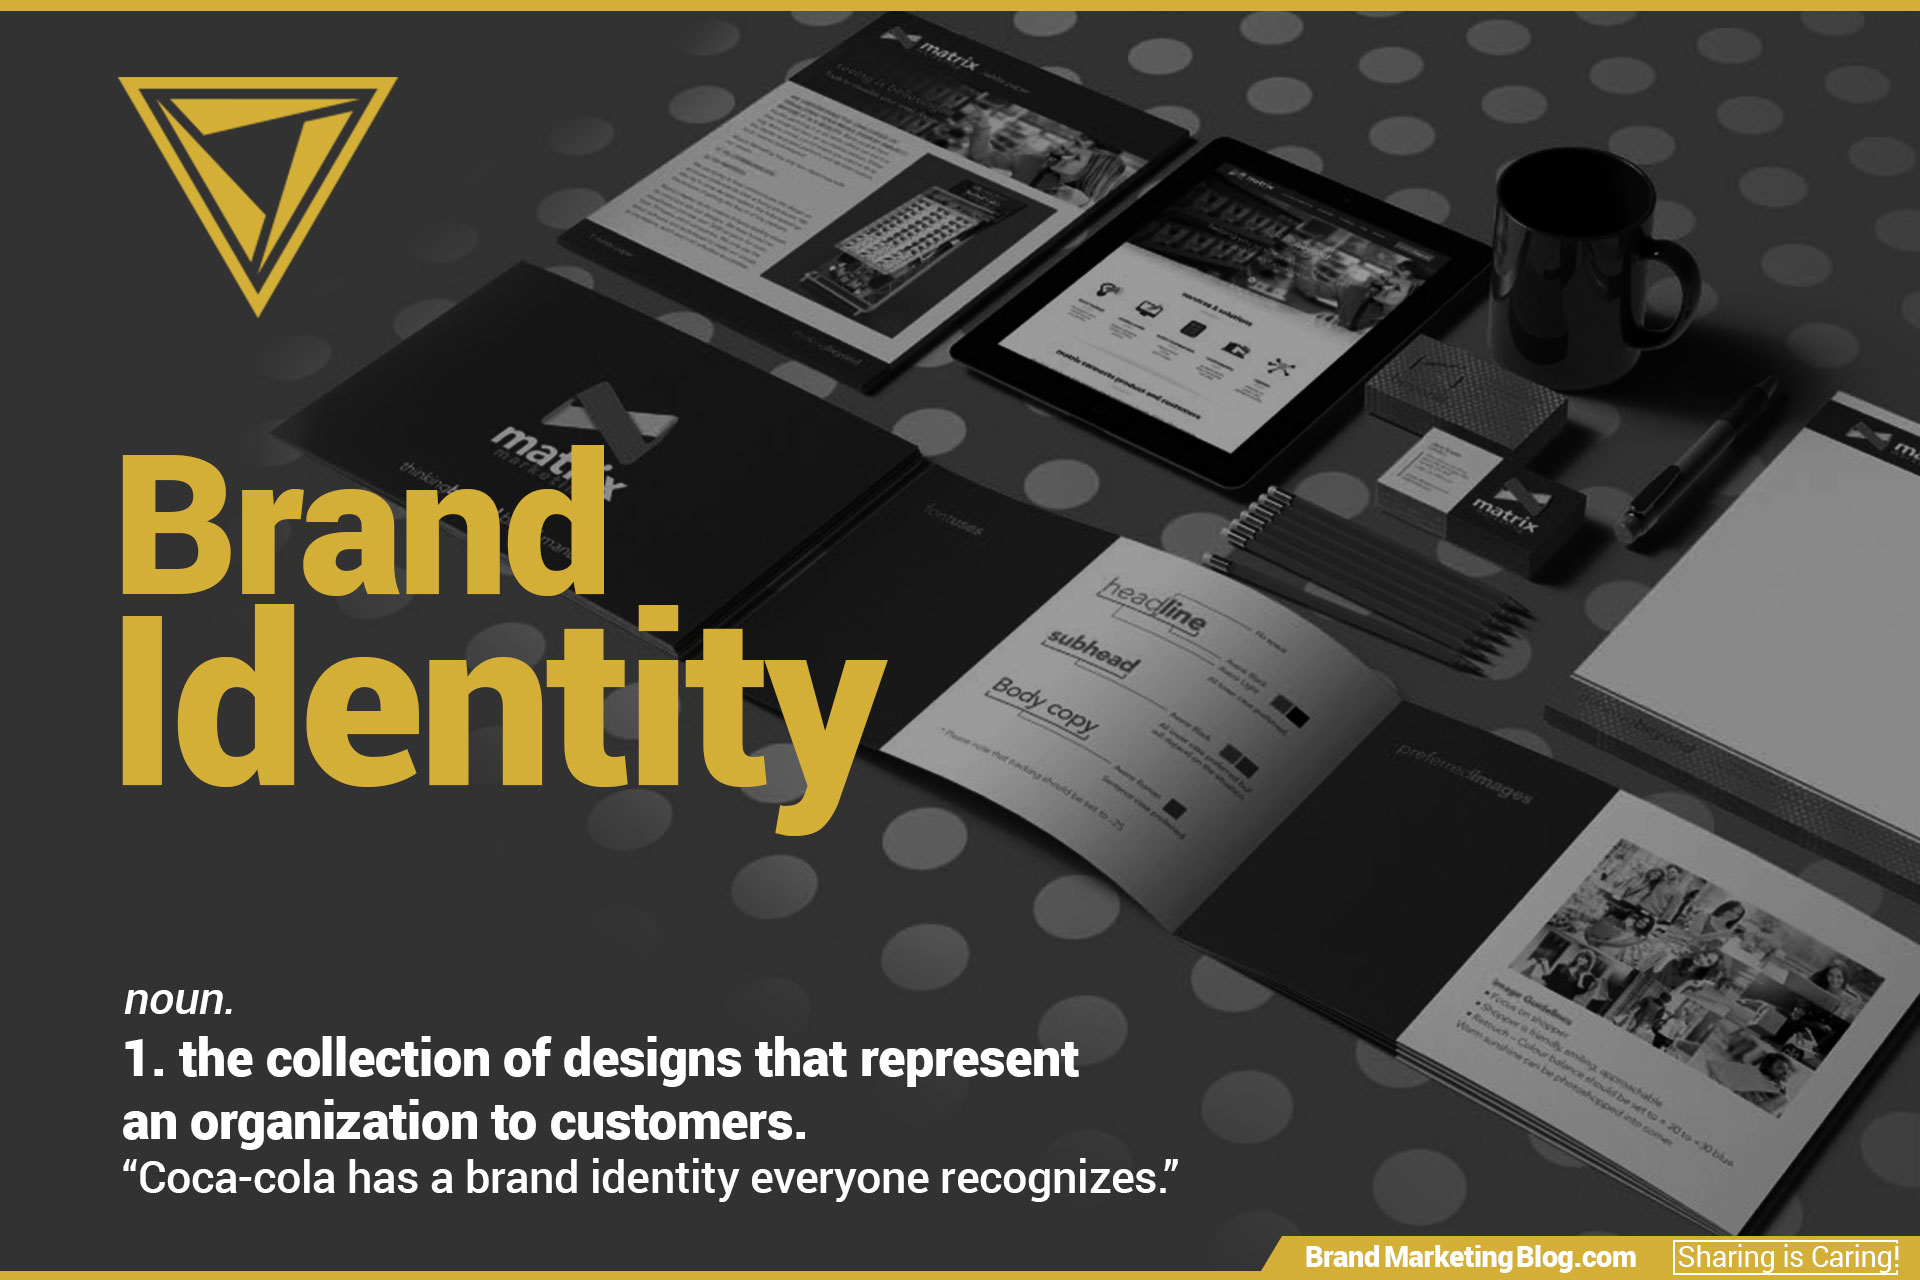 "Brand Identity definition. noun. 1. the collection of designs that represent an organization to customers. ""Coca-cola has a brand identity everyone recognizes."""